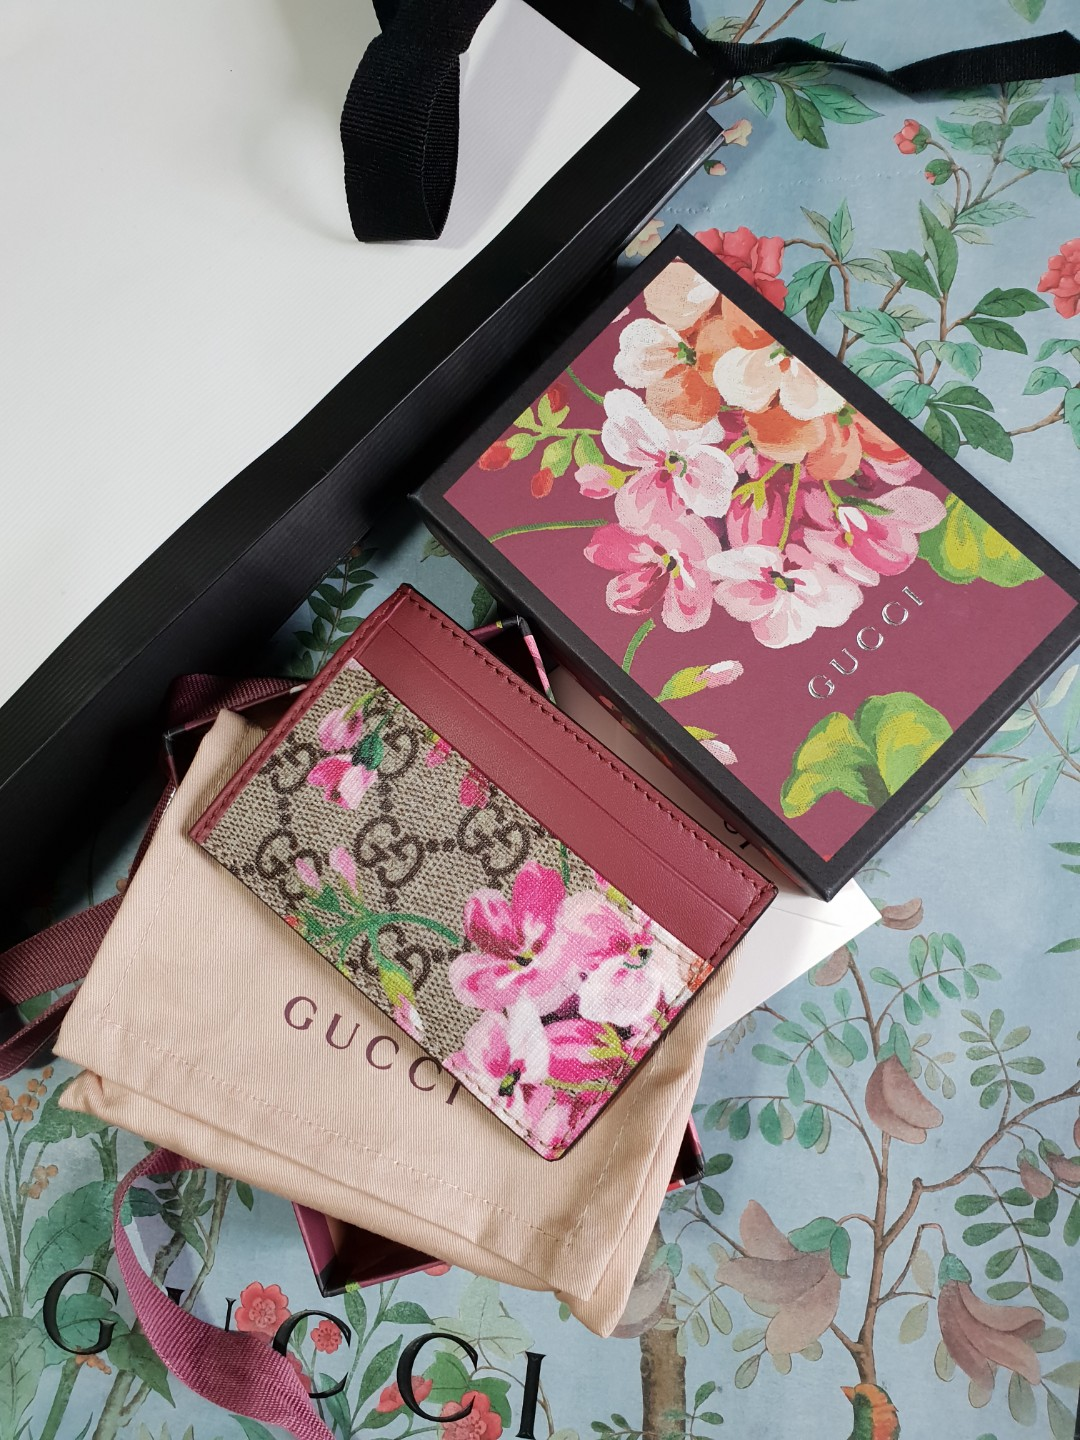 2f929aef544f32 Auth Gucci blossom card holder pink, Luxury, Accessories, Others on ...